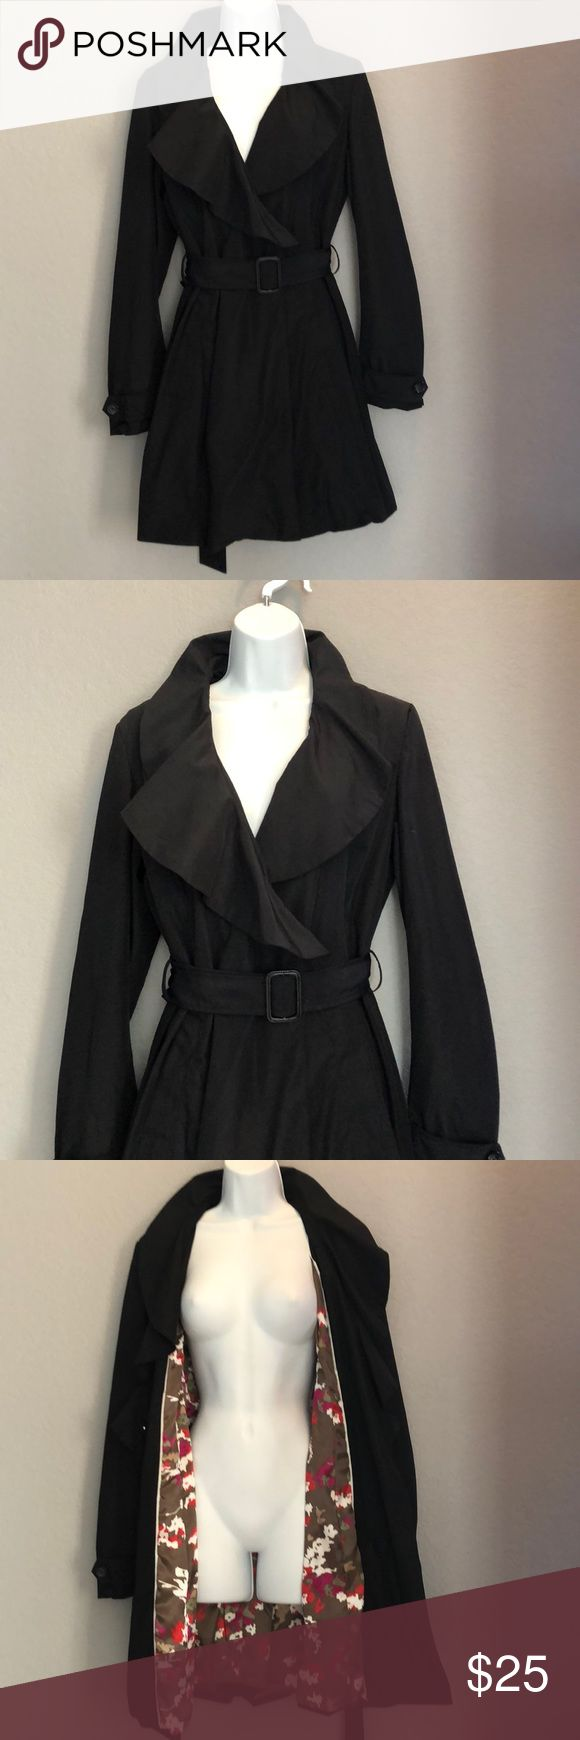 Black Trench Coat Size Medium Stylish Black Trench Coat Size Medium  Two clip buttons  💯 polyester Very light weight easy to travel with. Pre owned - very good shape isipiri Jackets & Coats Trench Coats